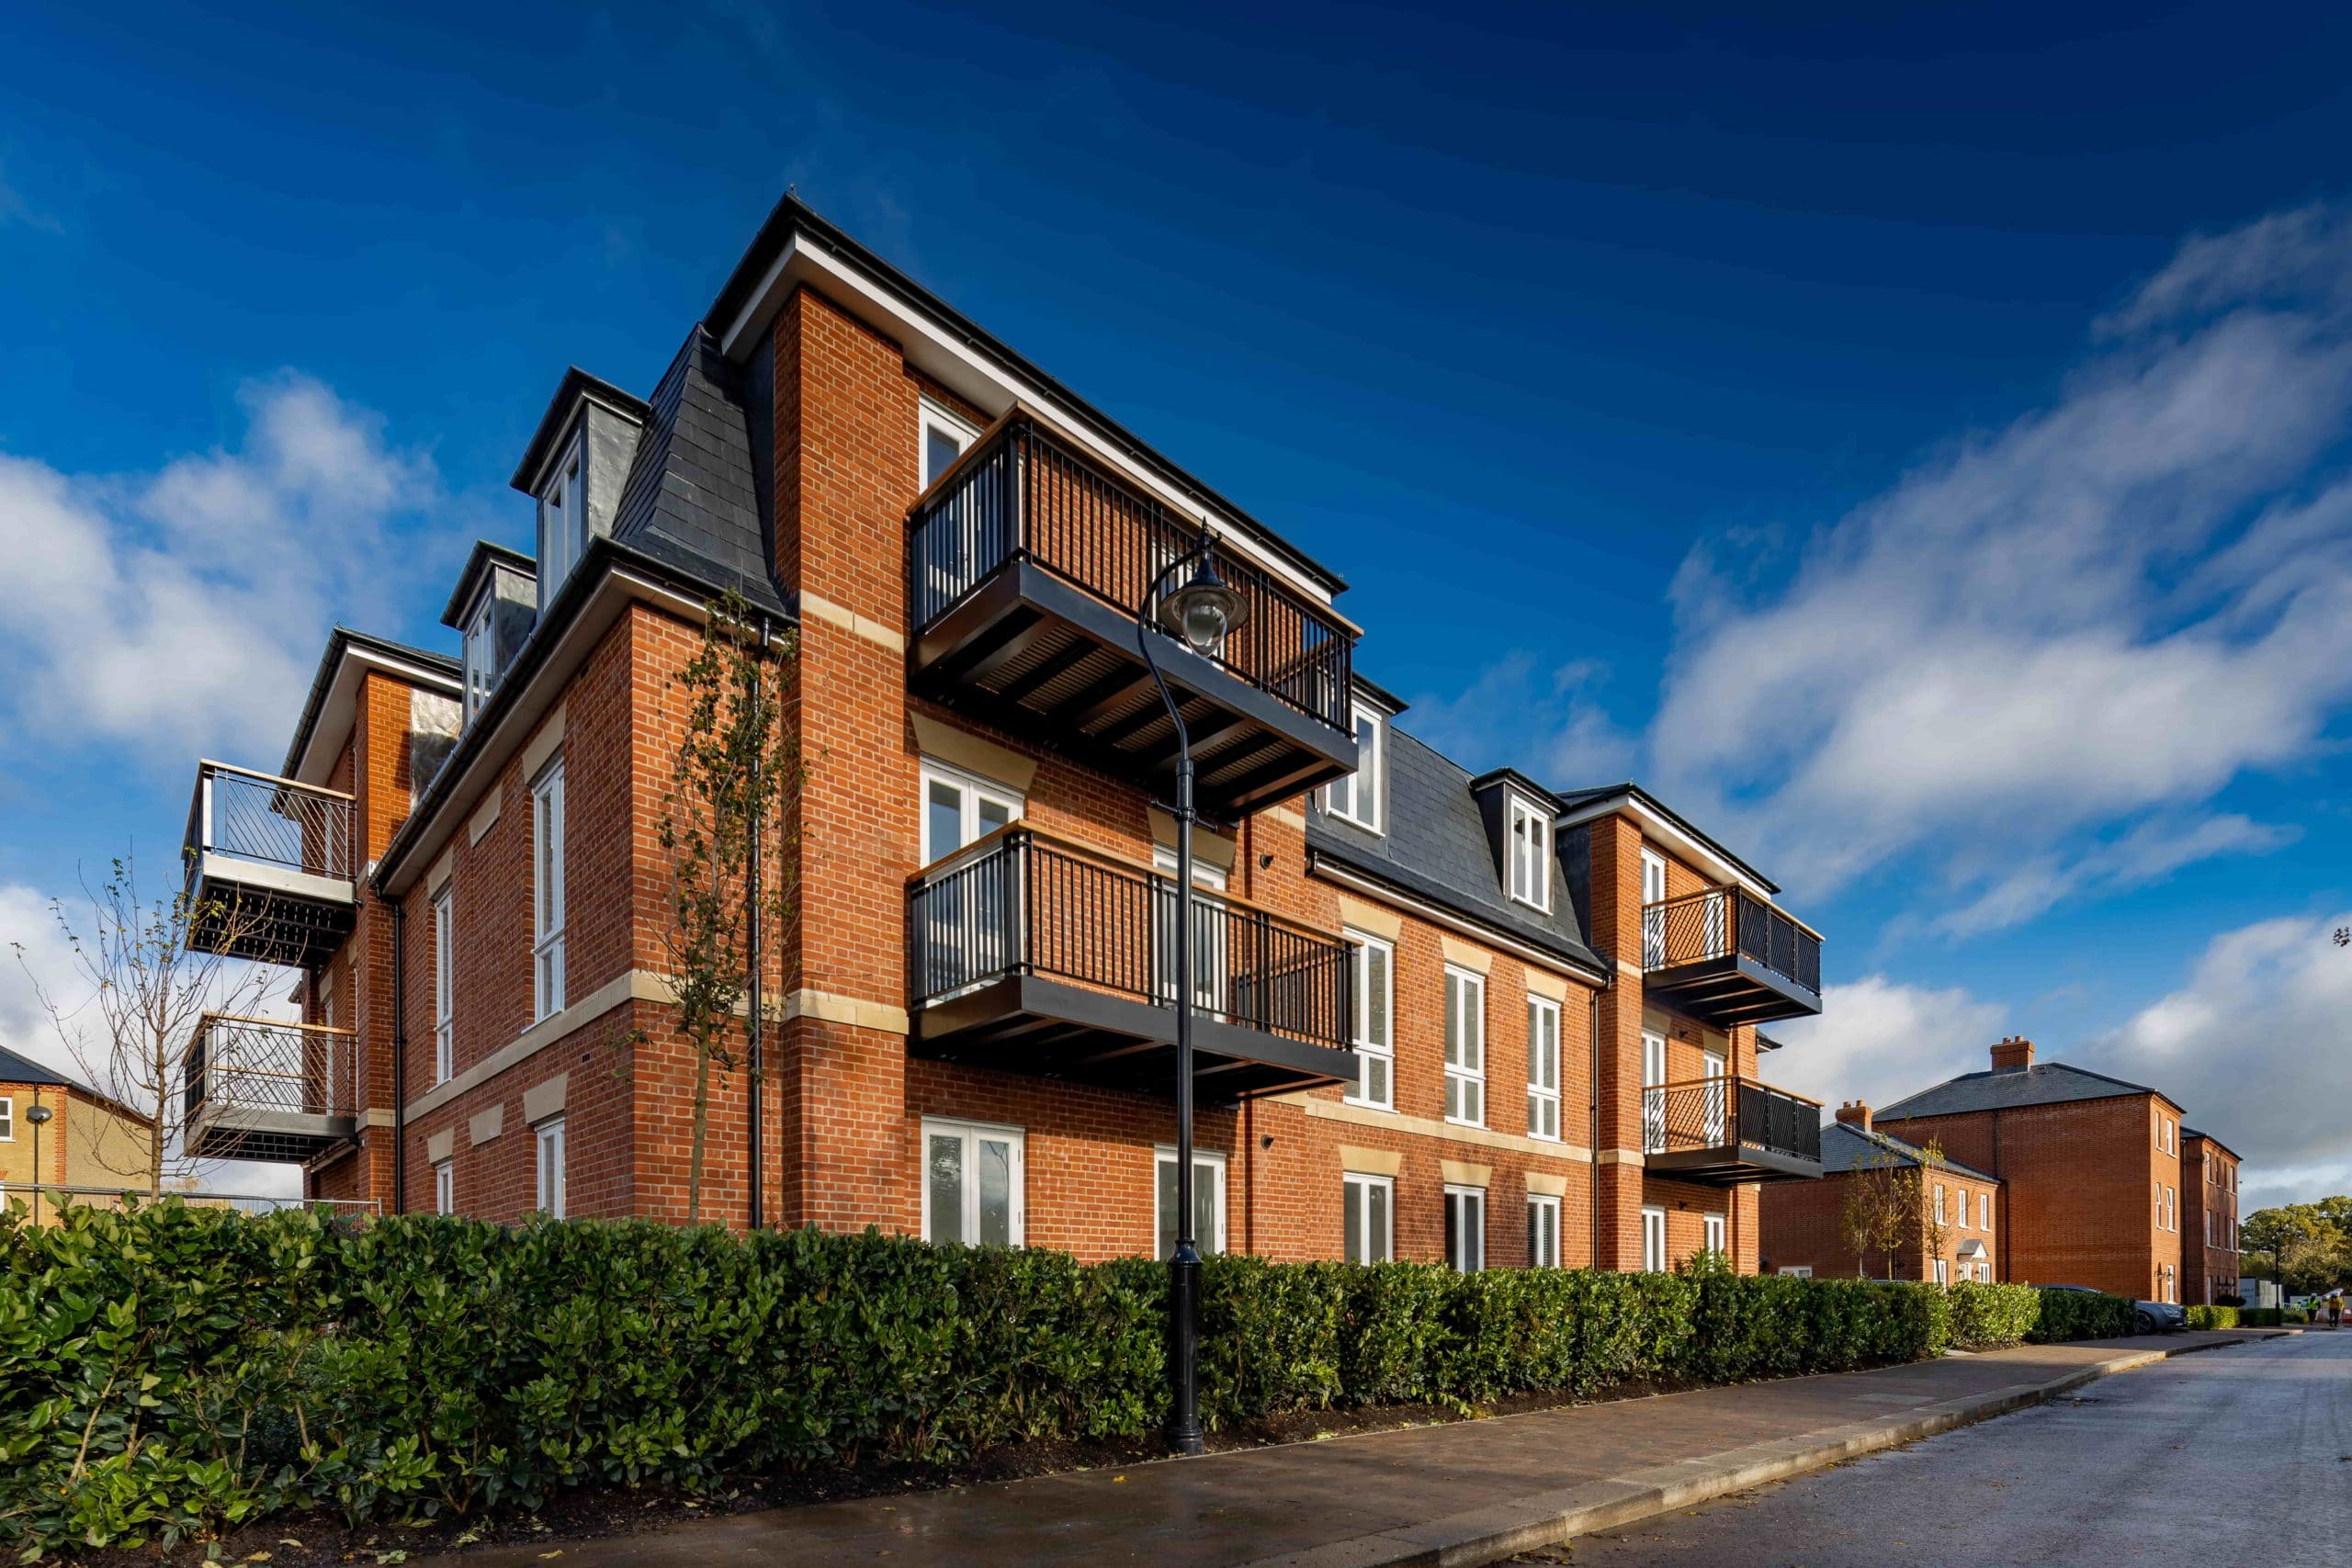 Exterior of 1, 2 & 3 Bedroom apartment The Chase Collection at Trent Park, Enfield